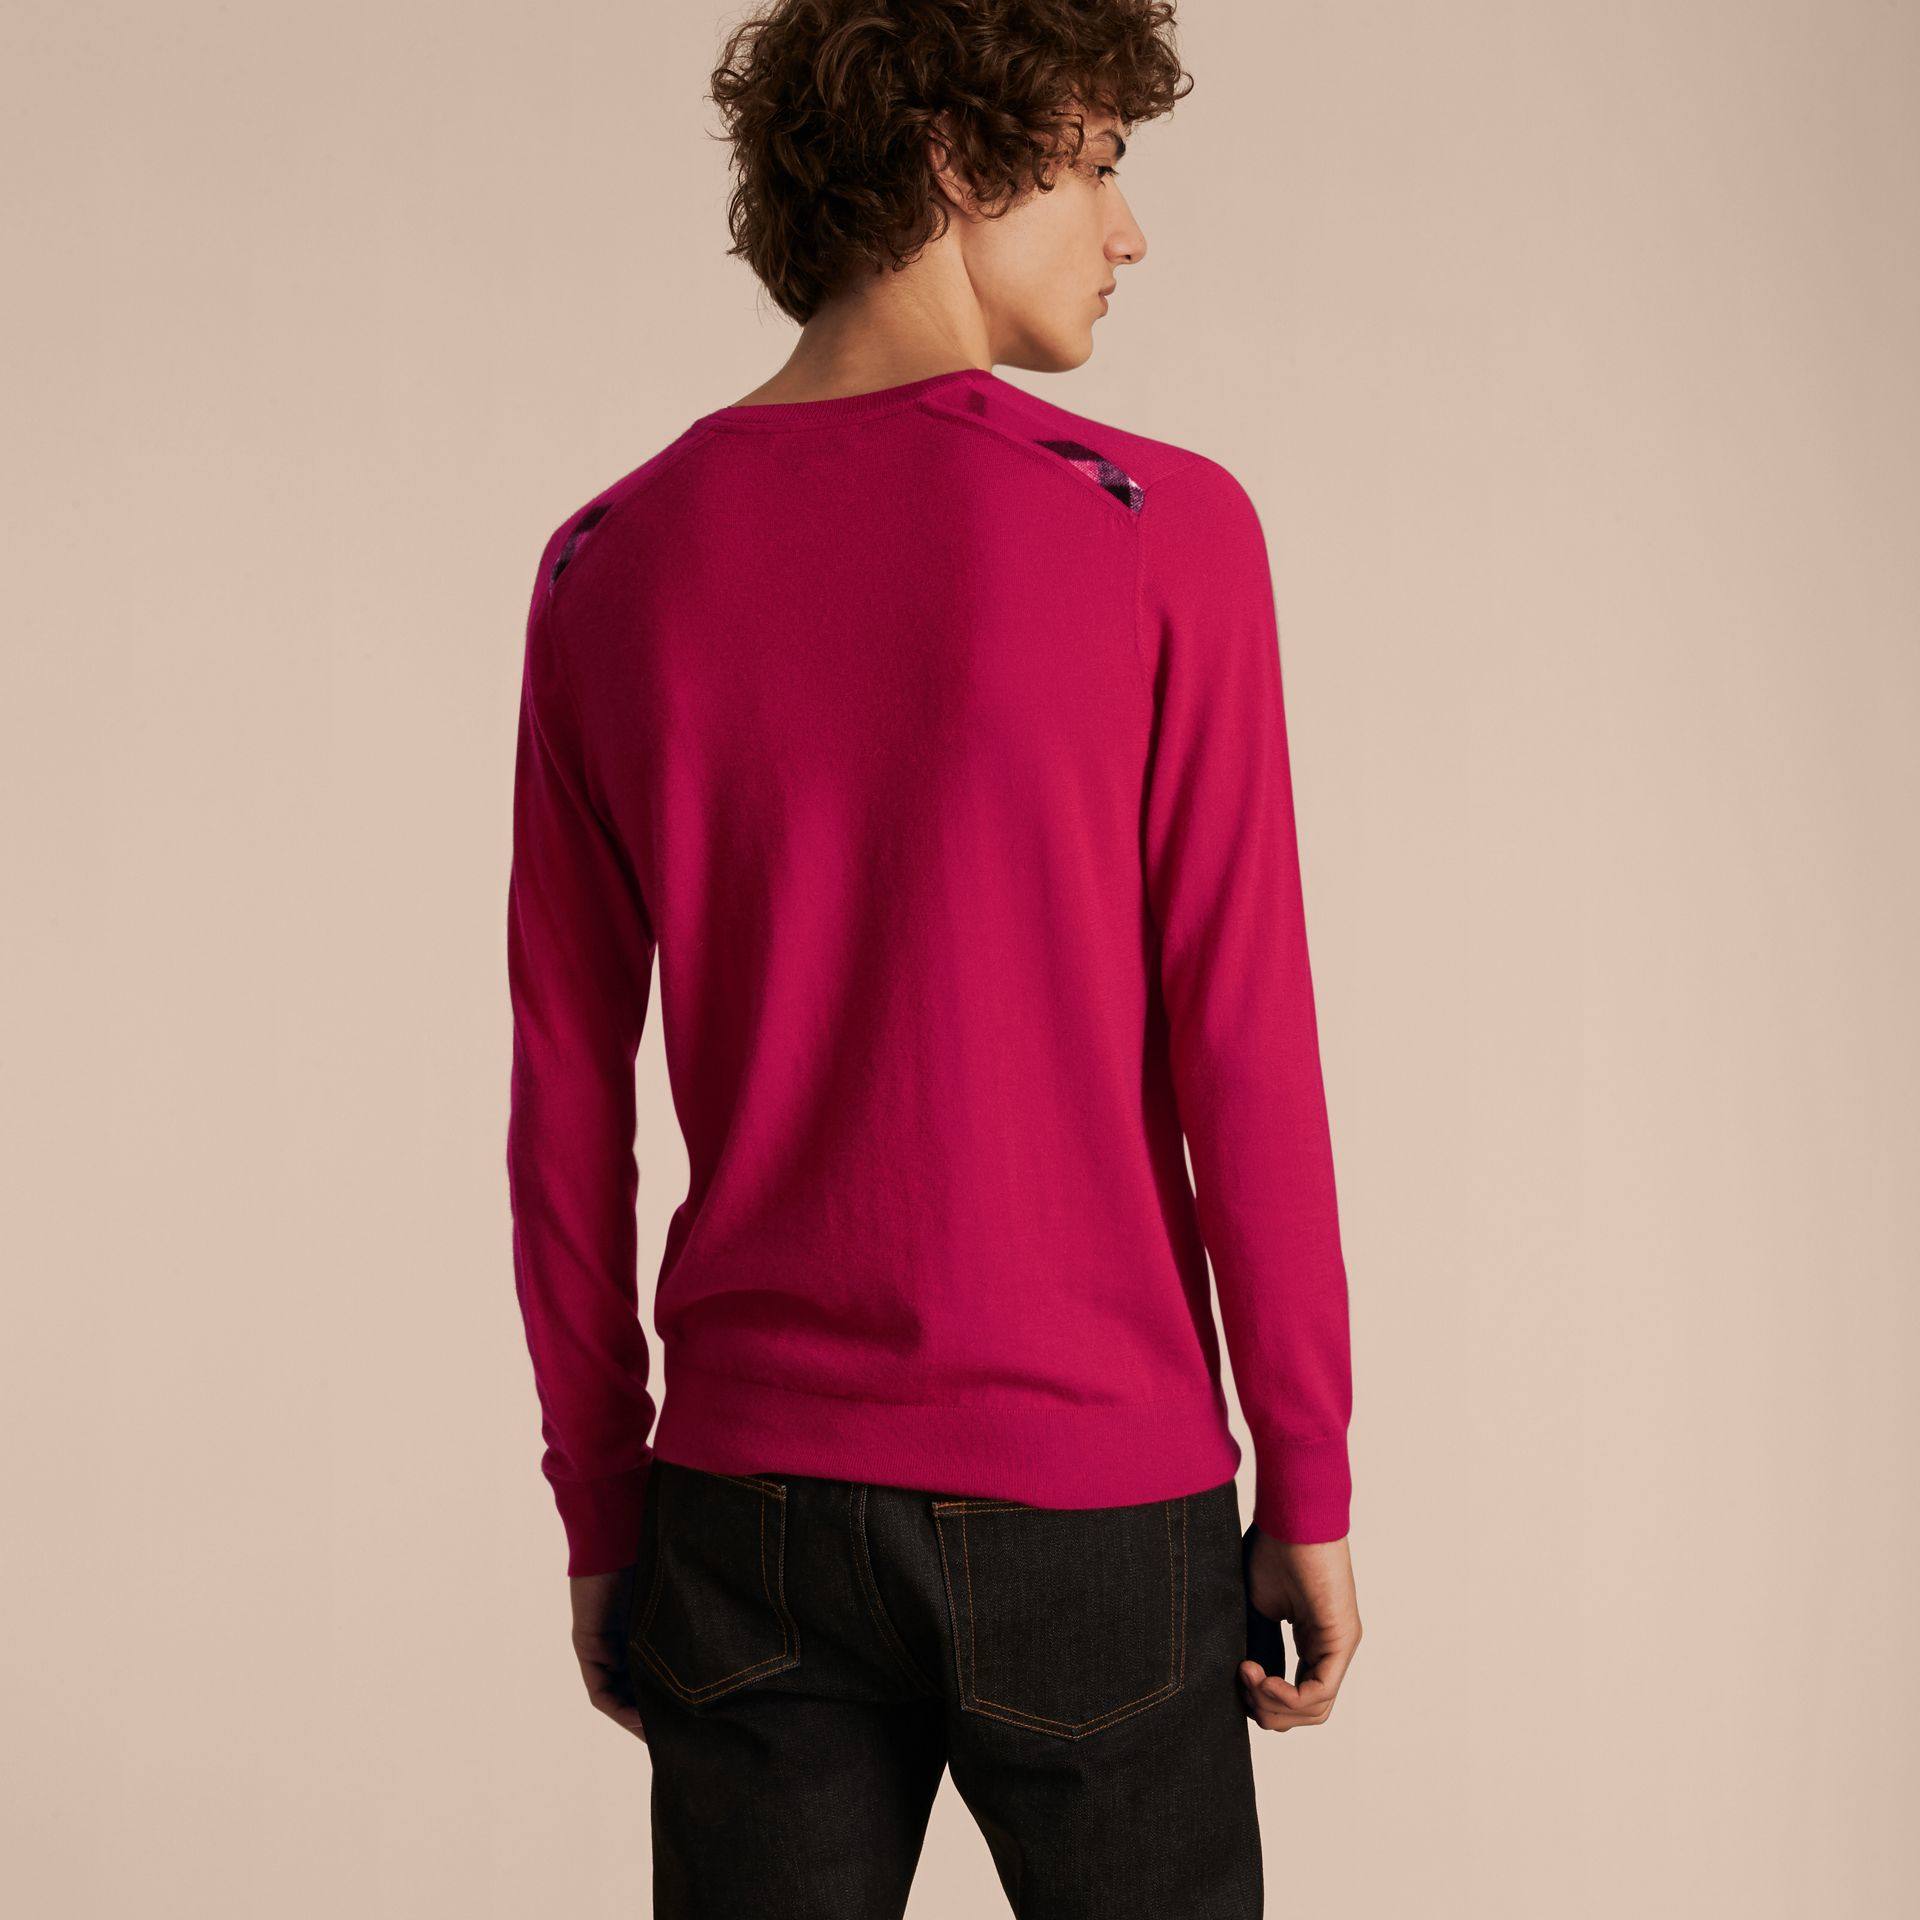 Bright pink Lightweight Crew Neck Cashmere Sweater with Check Trim Bright Pink - gallery image 3